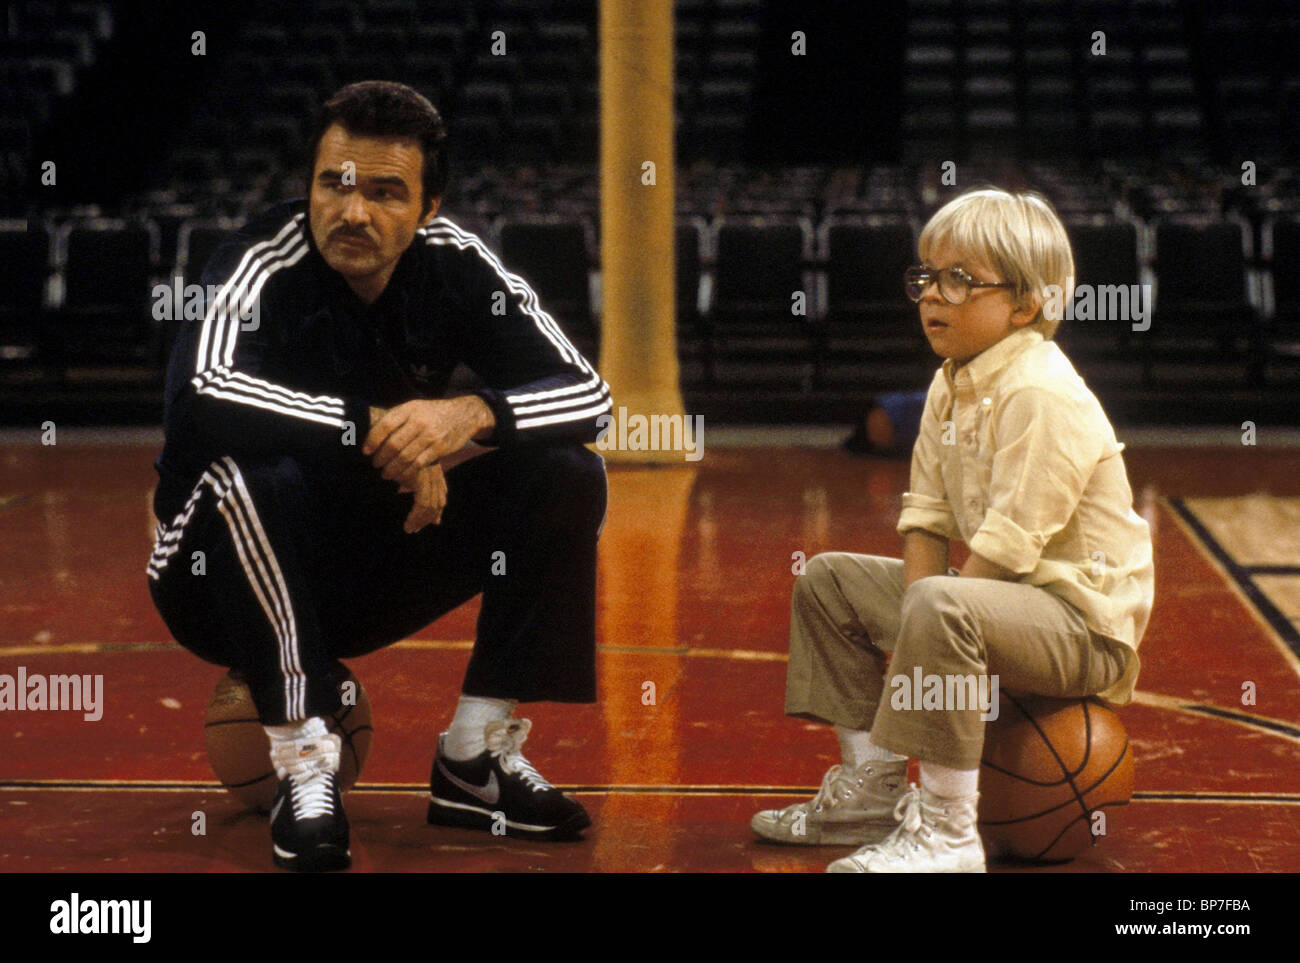 BURT REYNOLDS, Peter Billingsley, paternità, 1981 Immagini Stock